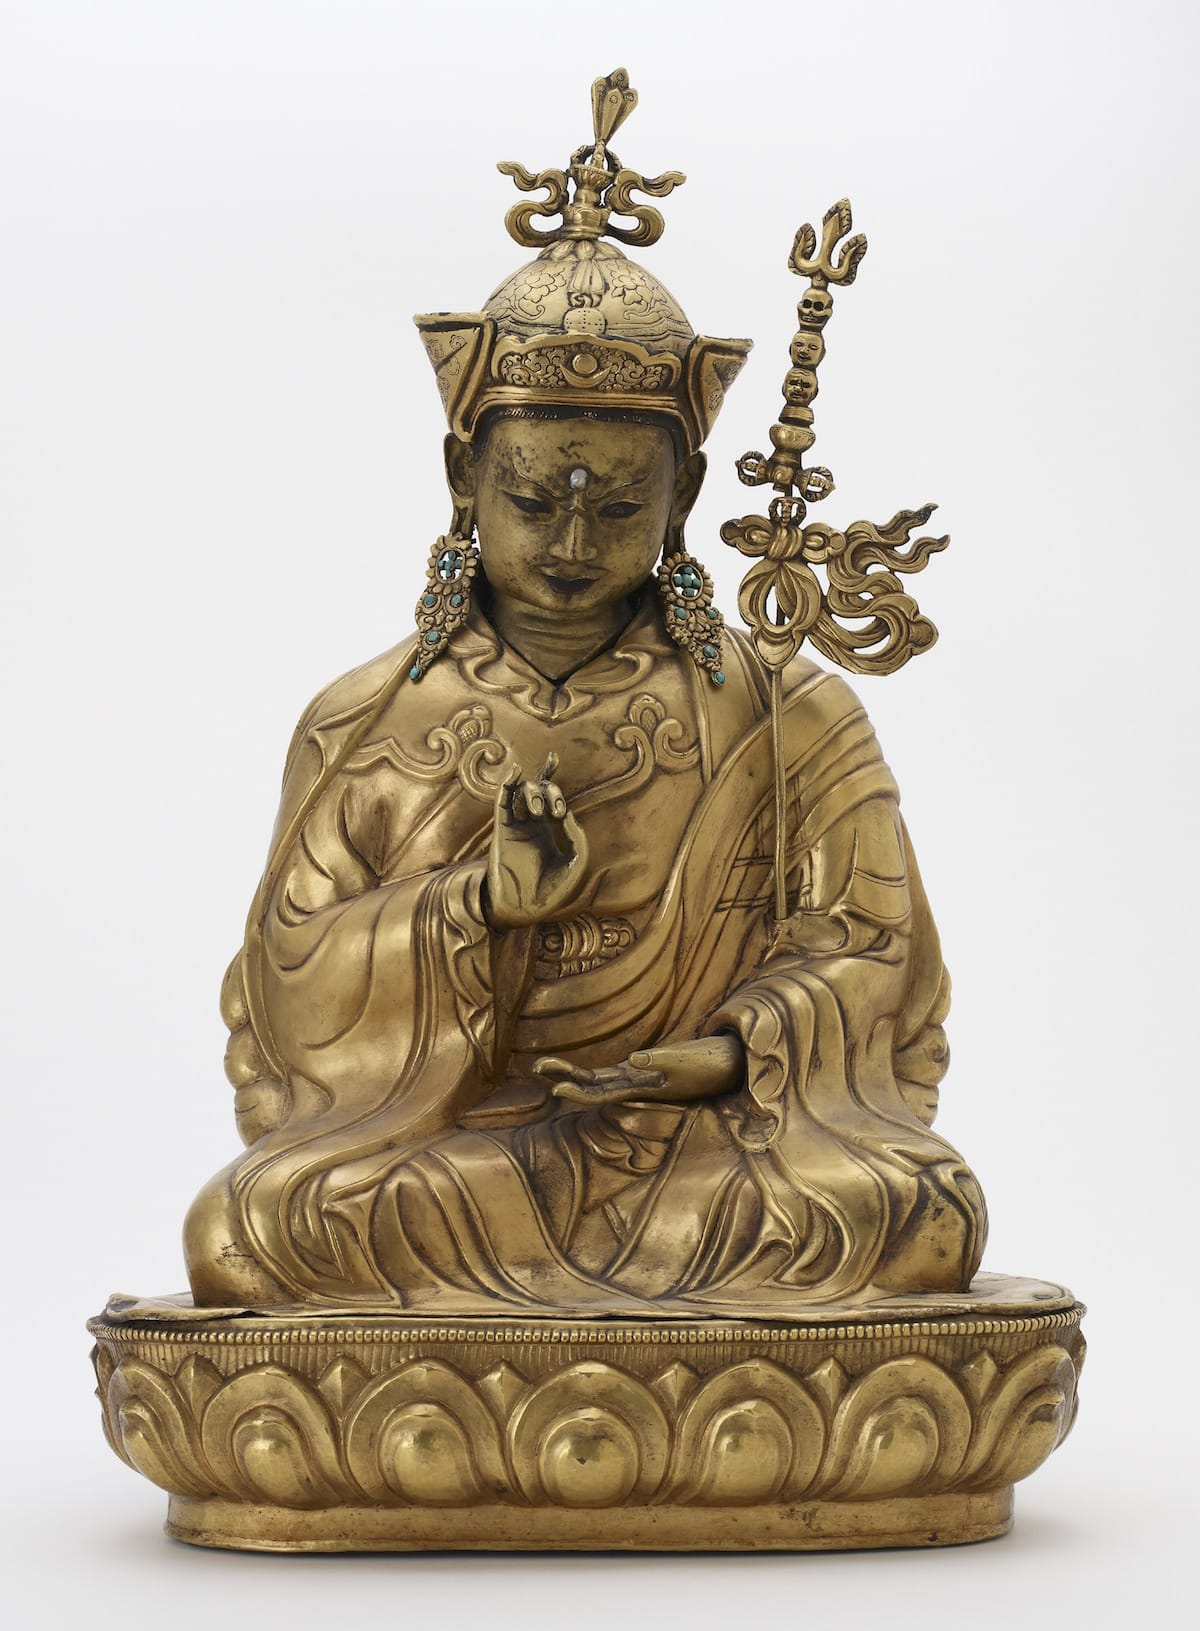 ; Central Tibet; first half of the 18th century; Gilt copper repoussé with cast head and hands and removable earrings; tourquoise; H x W: 53.3 x 35.6 cm (21 x 14 in); The Alice S. Kandell Collection